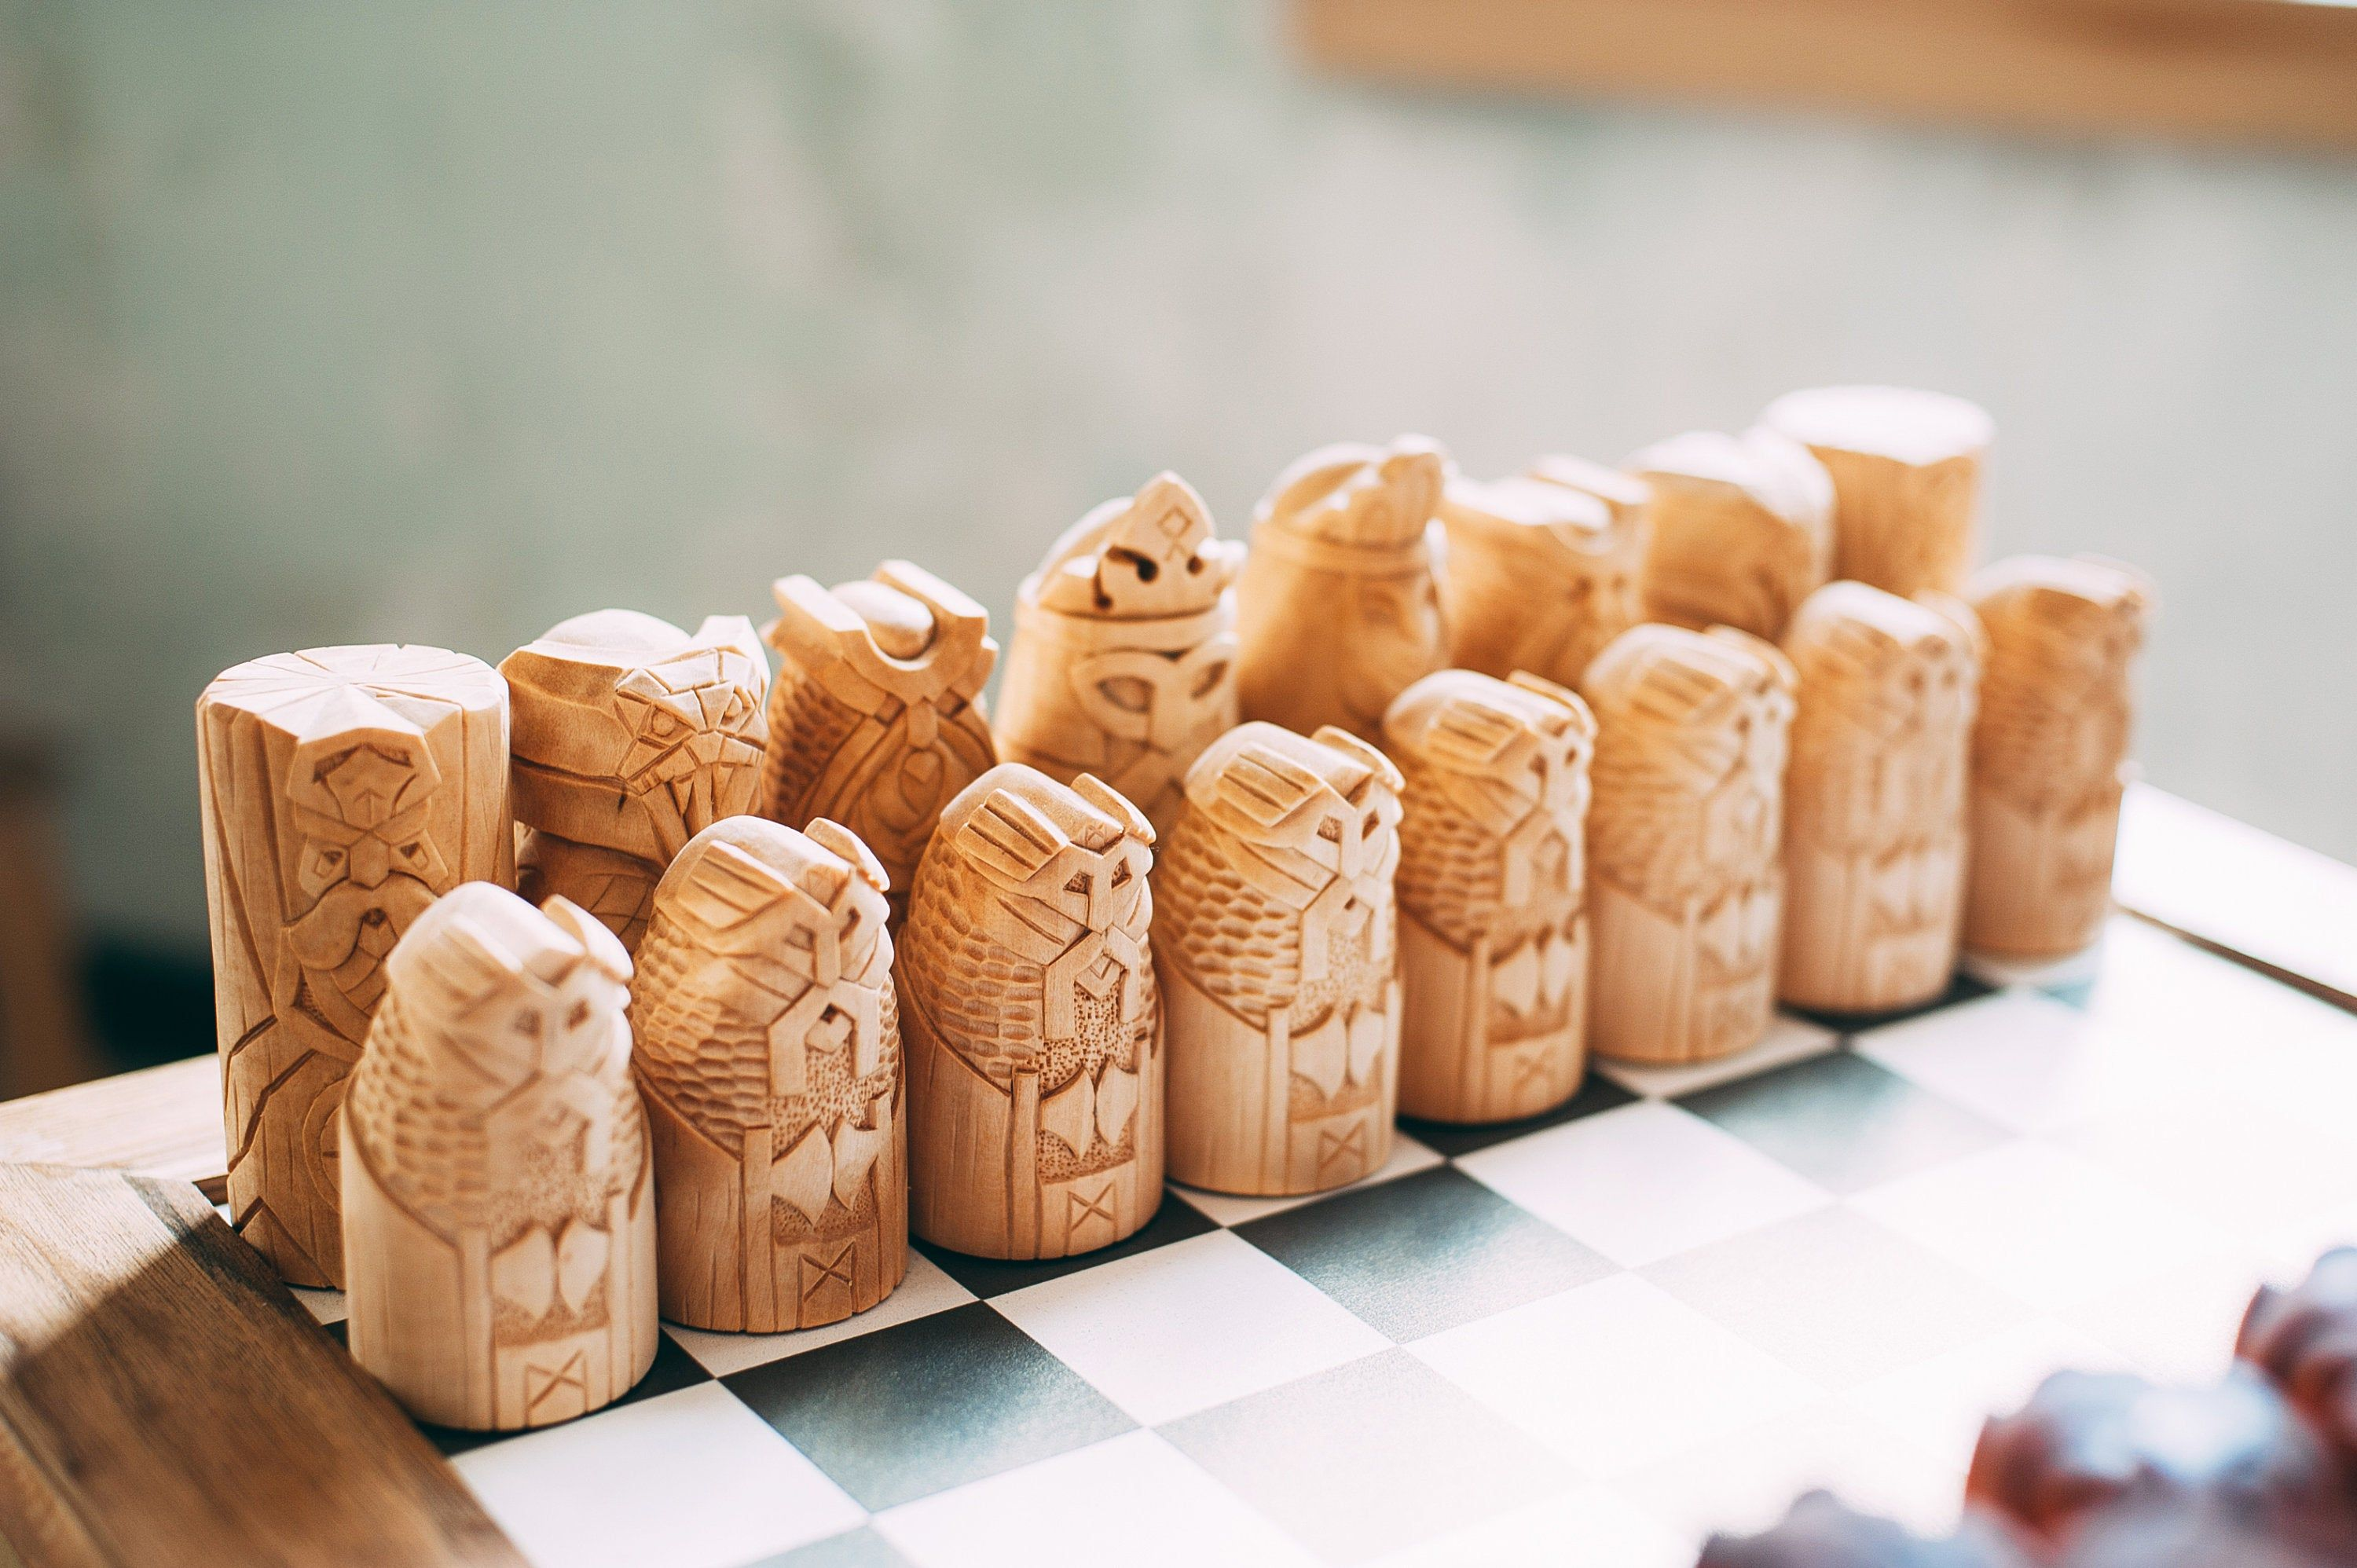 Scandinavian Chess Set Vikings Chess Hand Carved Scandinavian Gods Chess Odin God Freya Statue Freya Frig Loki Thor Statue In 2020 Viking Chess Carving Scandinavian